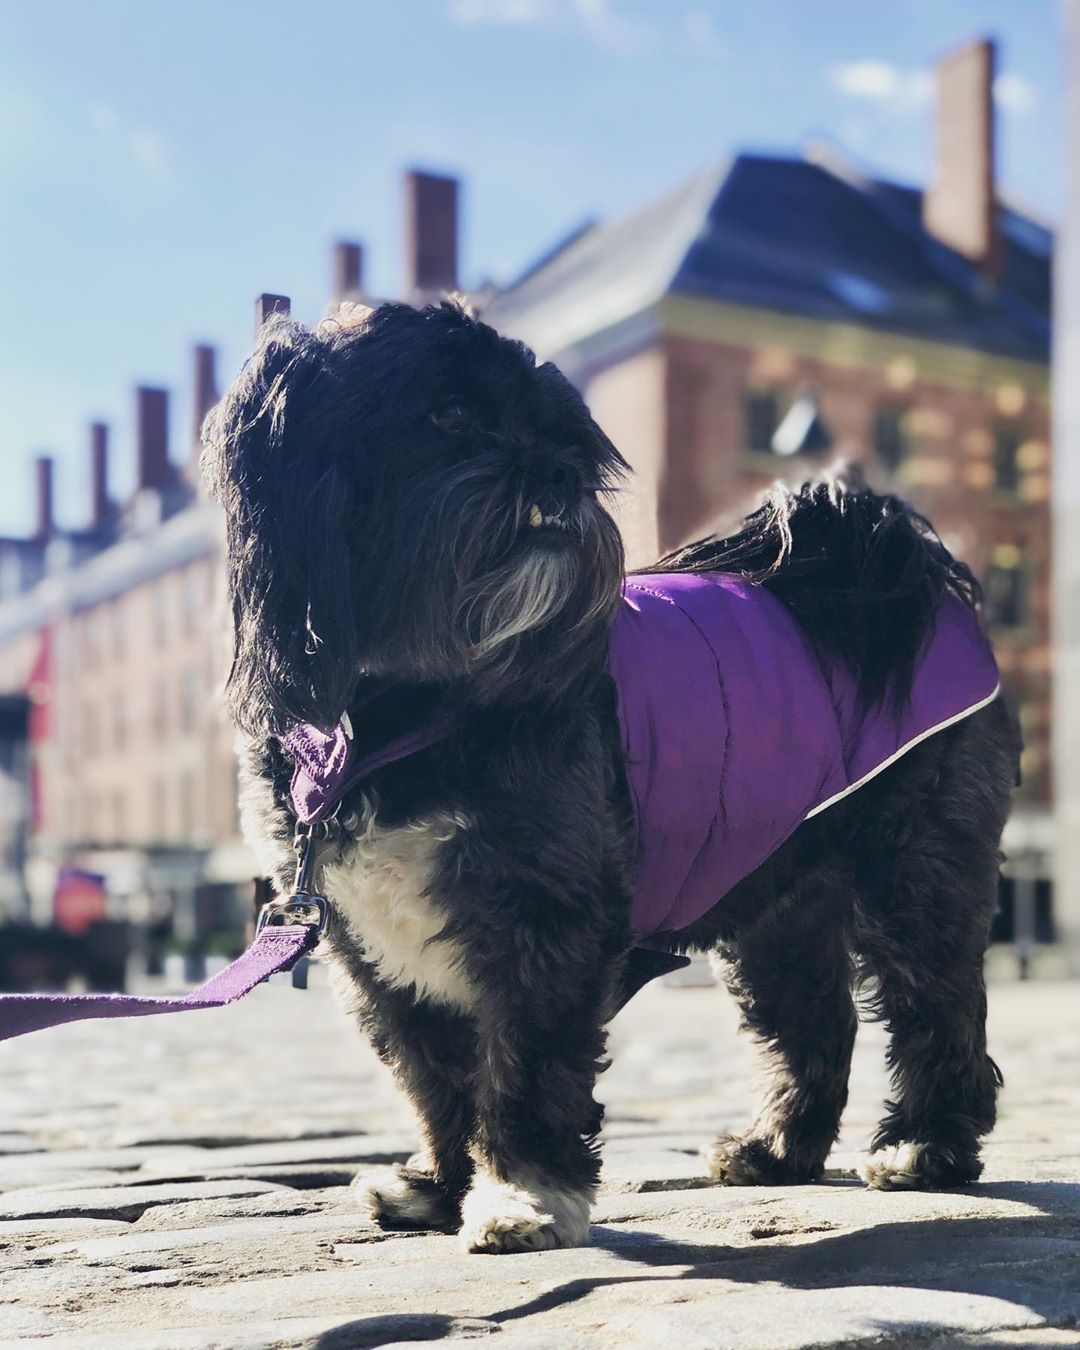 When The Dogs Begin To Smell Her : begin, smell, Sweet, Preferred, Taking, Sniffing, Every, Smell, Could, Rather, Walking, Enough, Get..., Girls,, Animals,